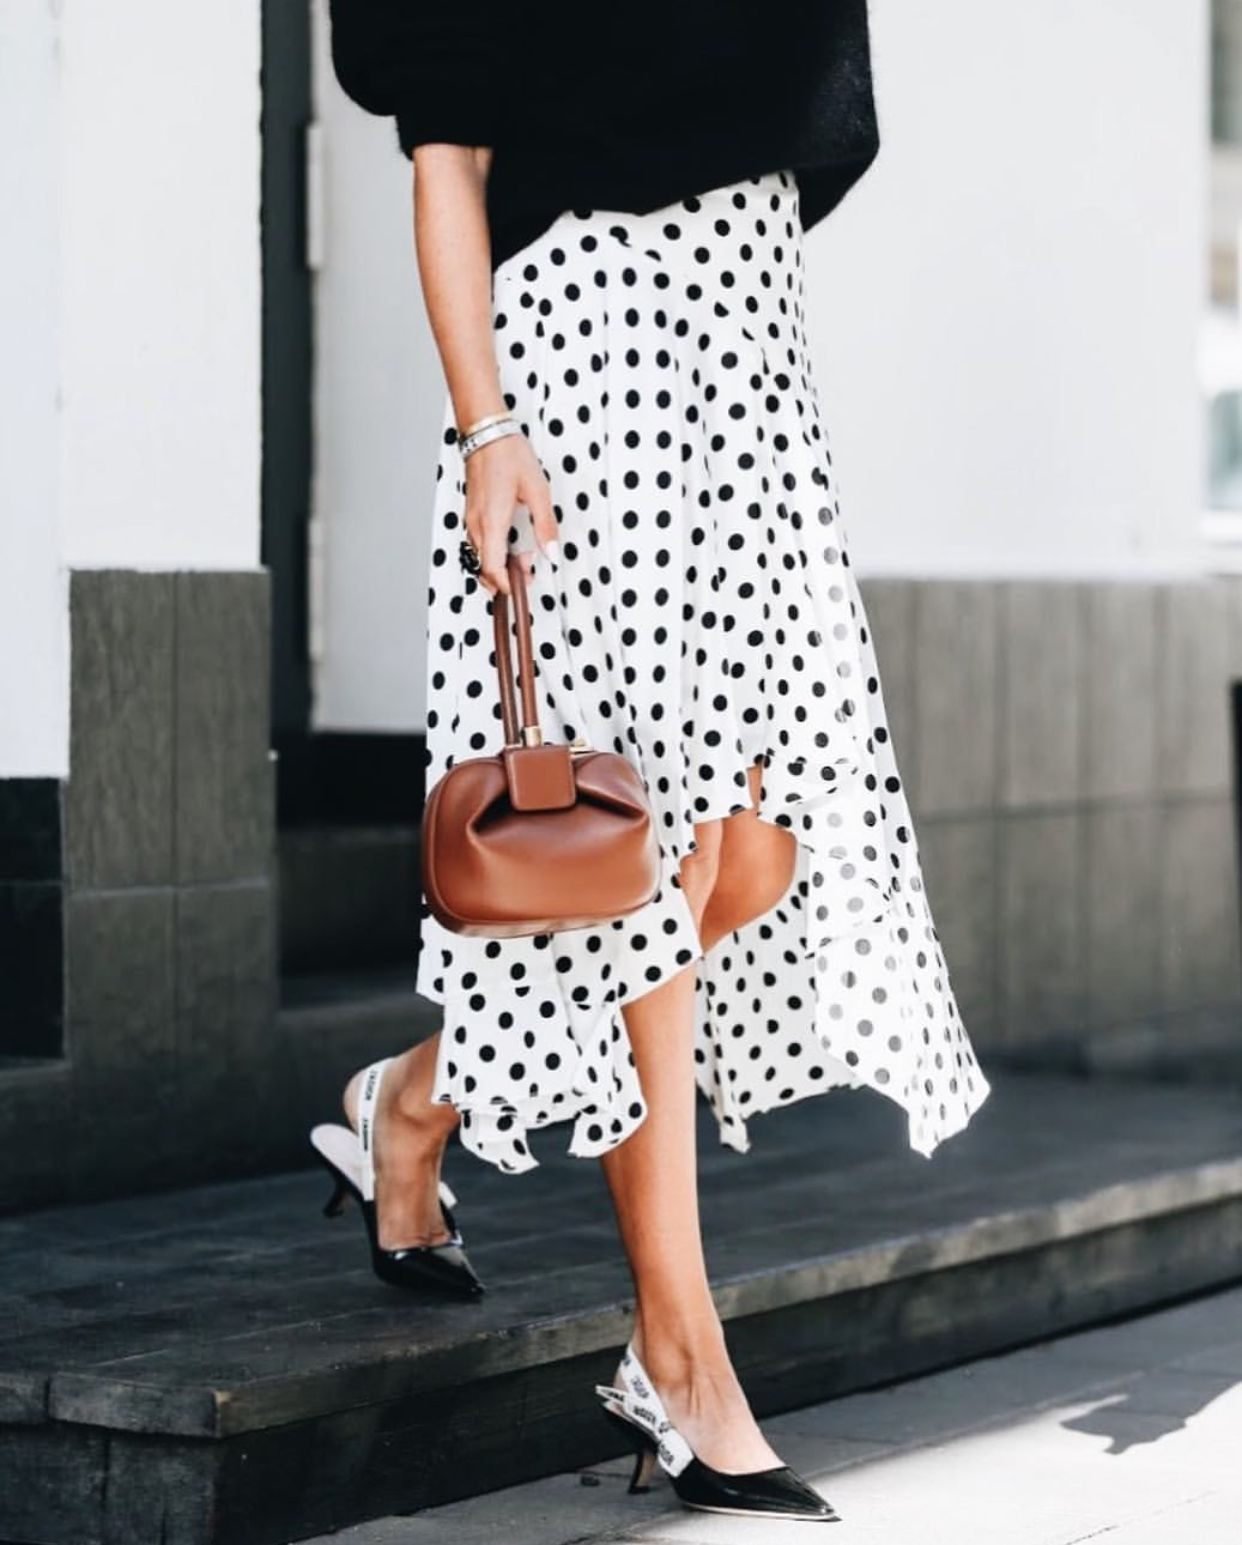 d0917c3b02 polka dot skirt and dior slingback shoes | Beautiful Black & White ...